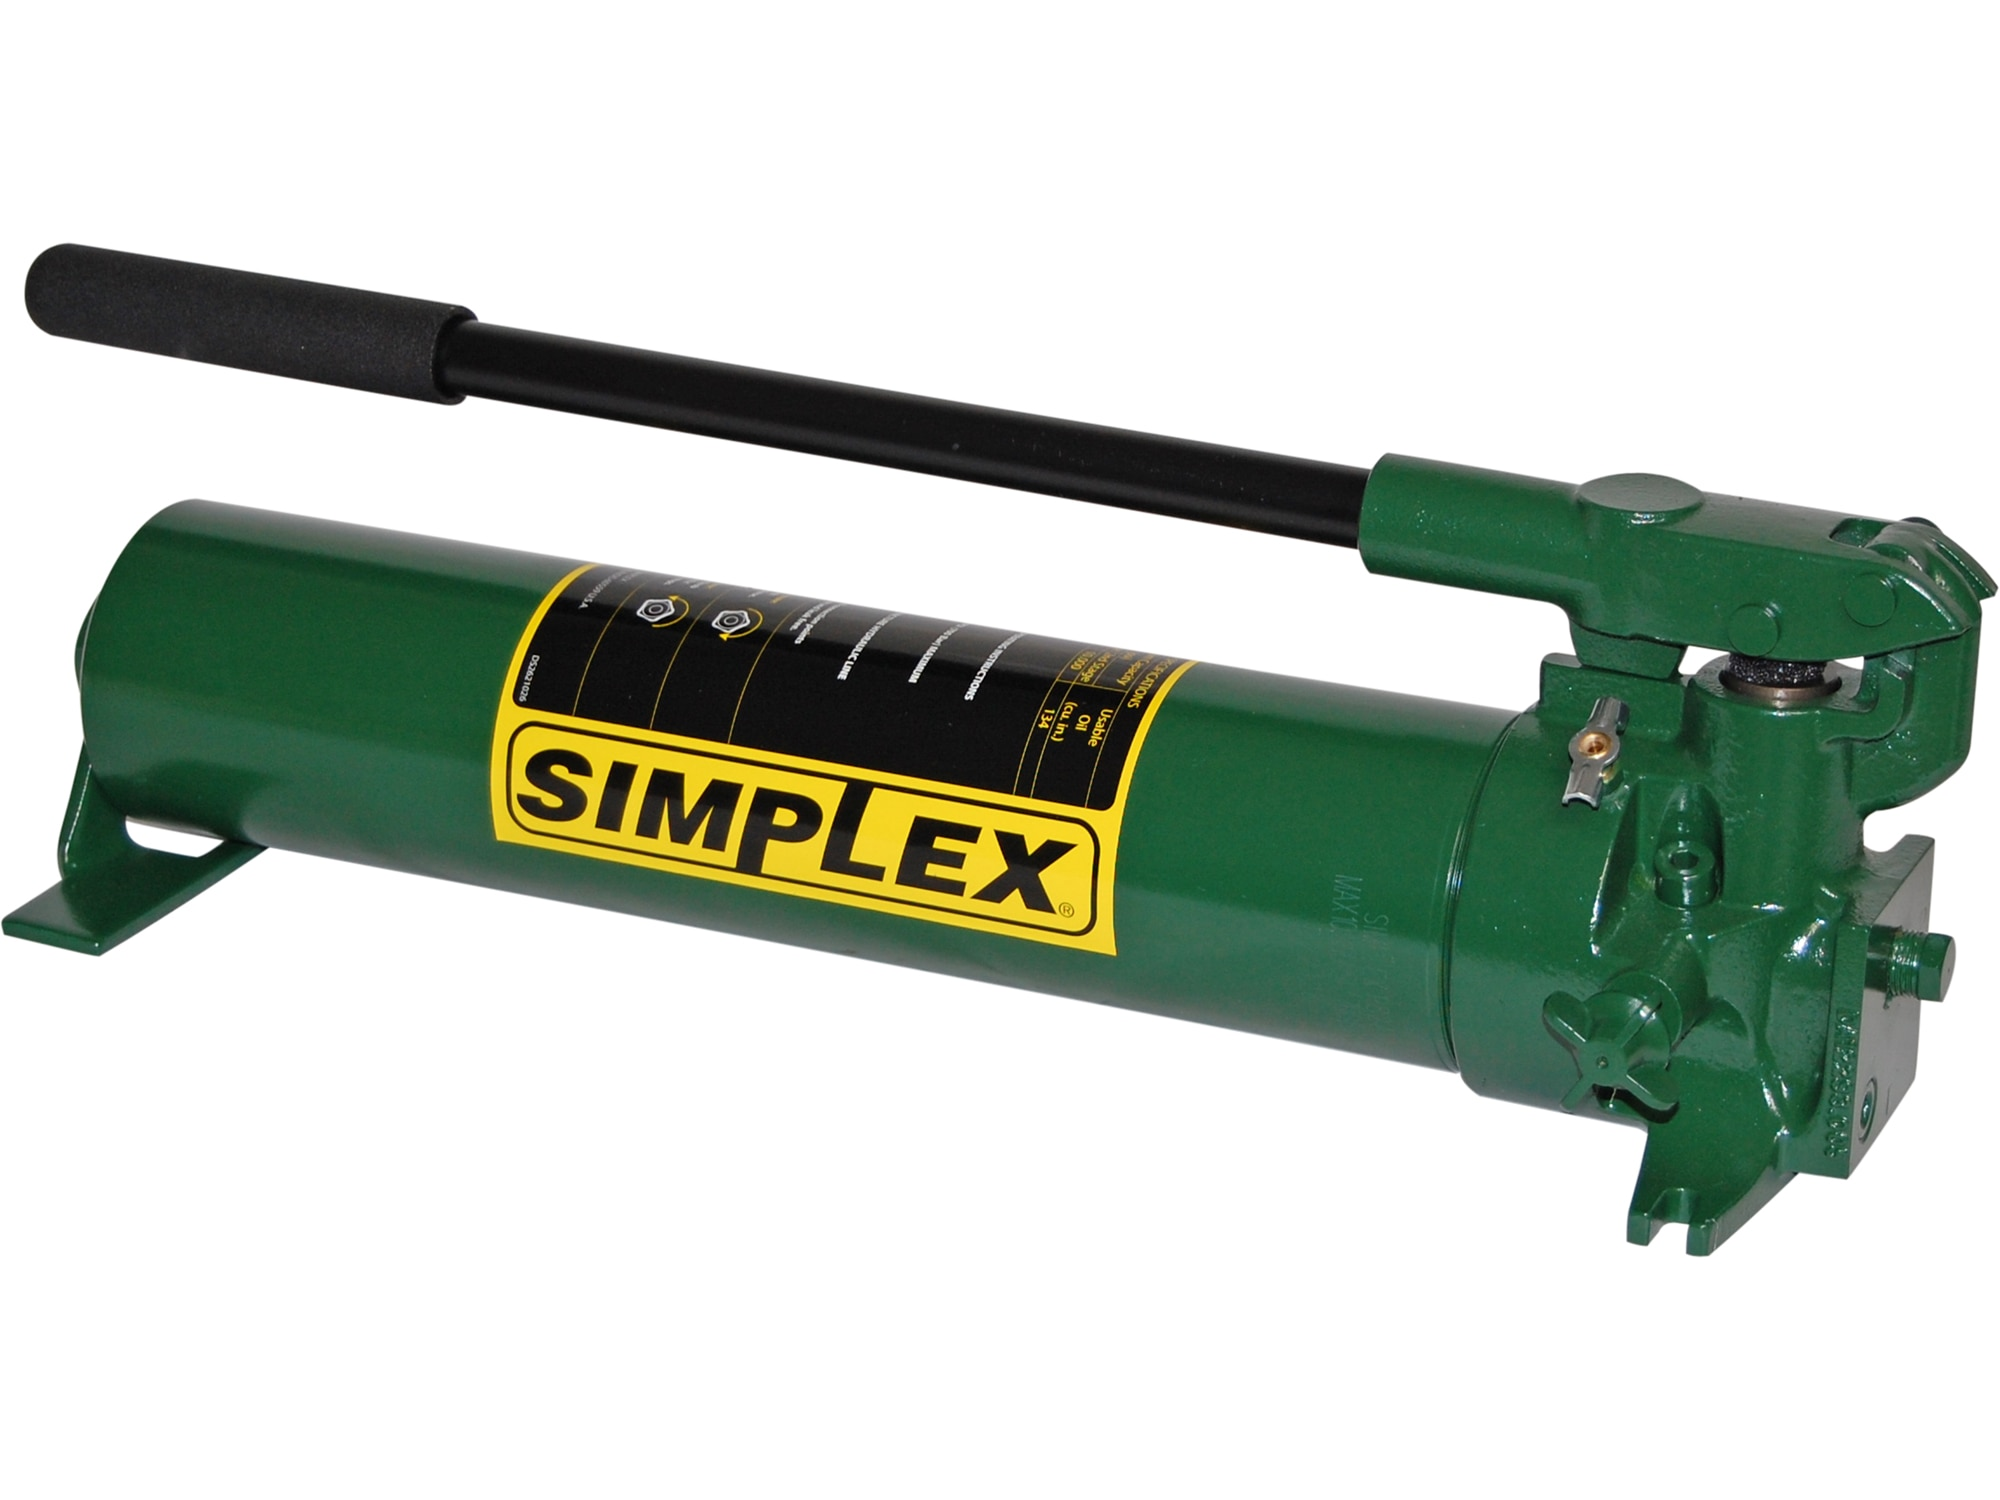 Simplex   Industrial Tools   An American Company Since 1899